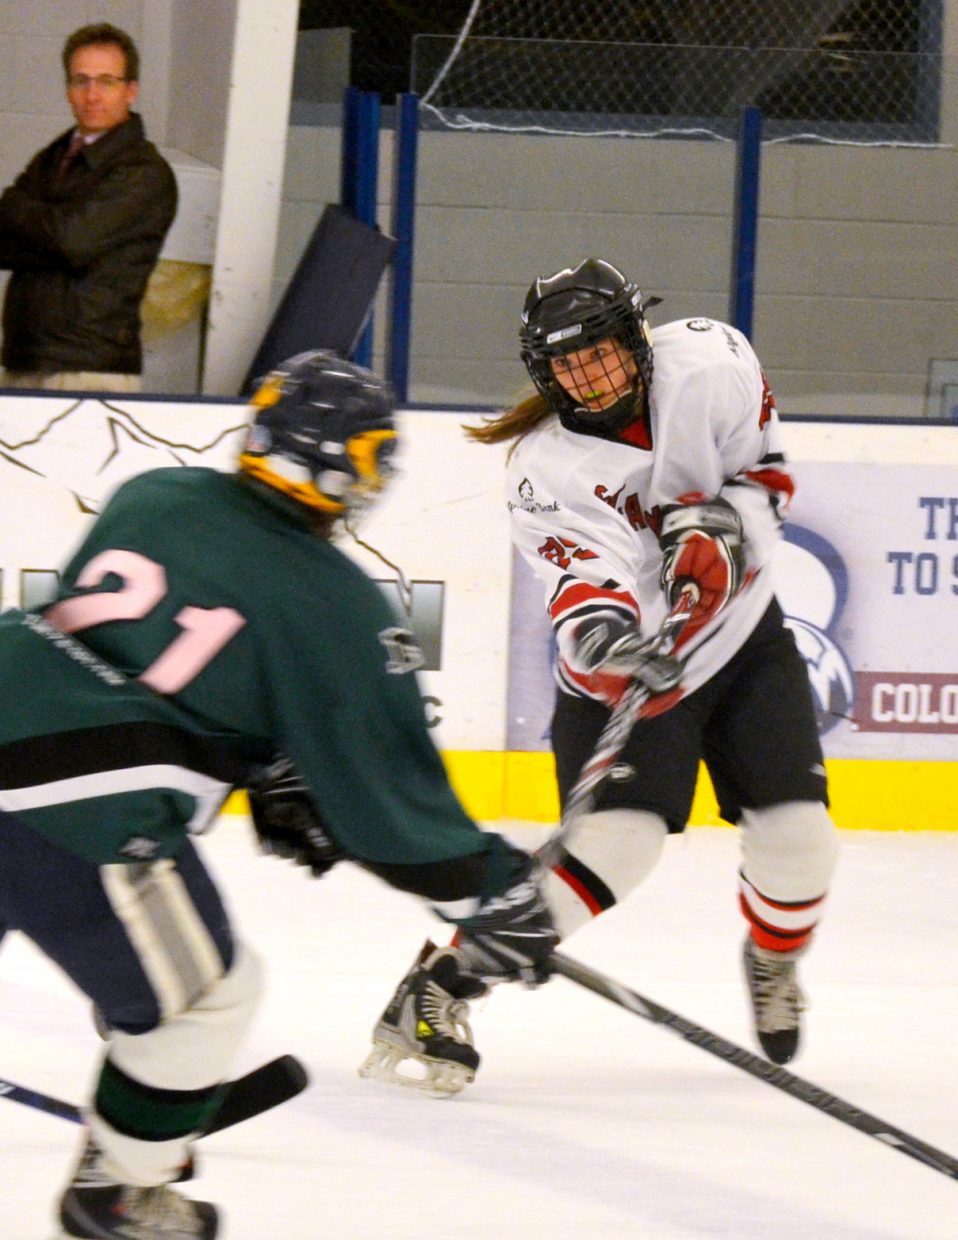 Kelly Borgerding plays during the weekend in Aspen's Fall Face Off hockey tournament.